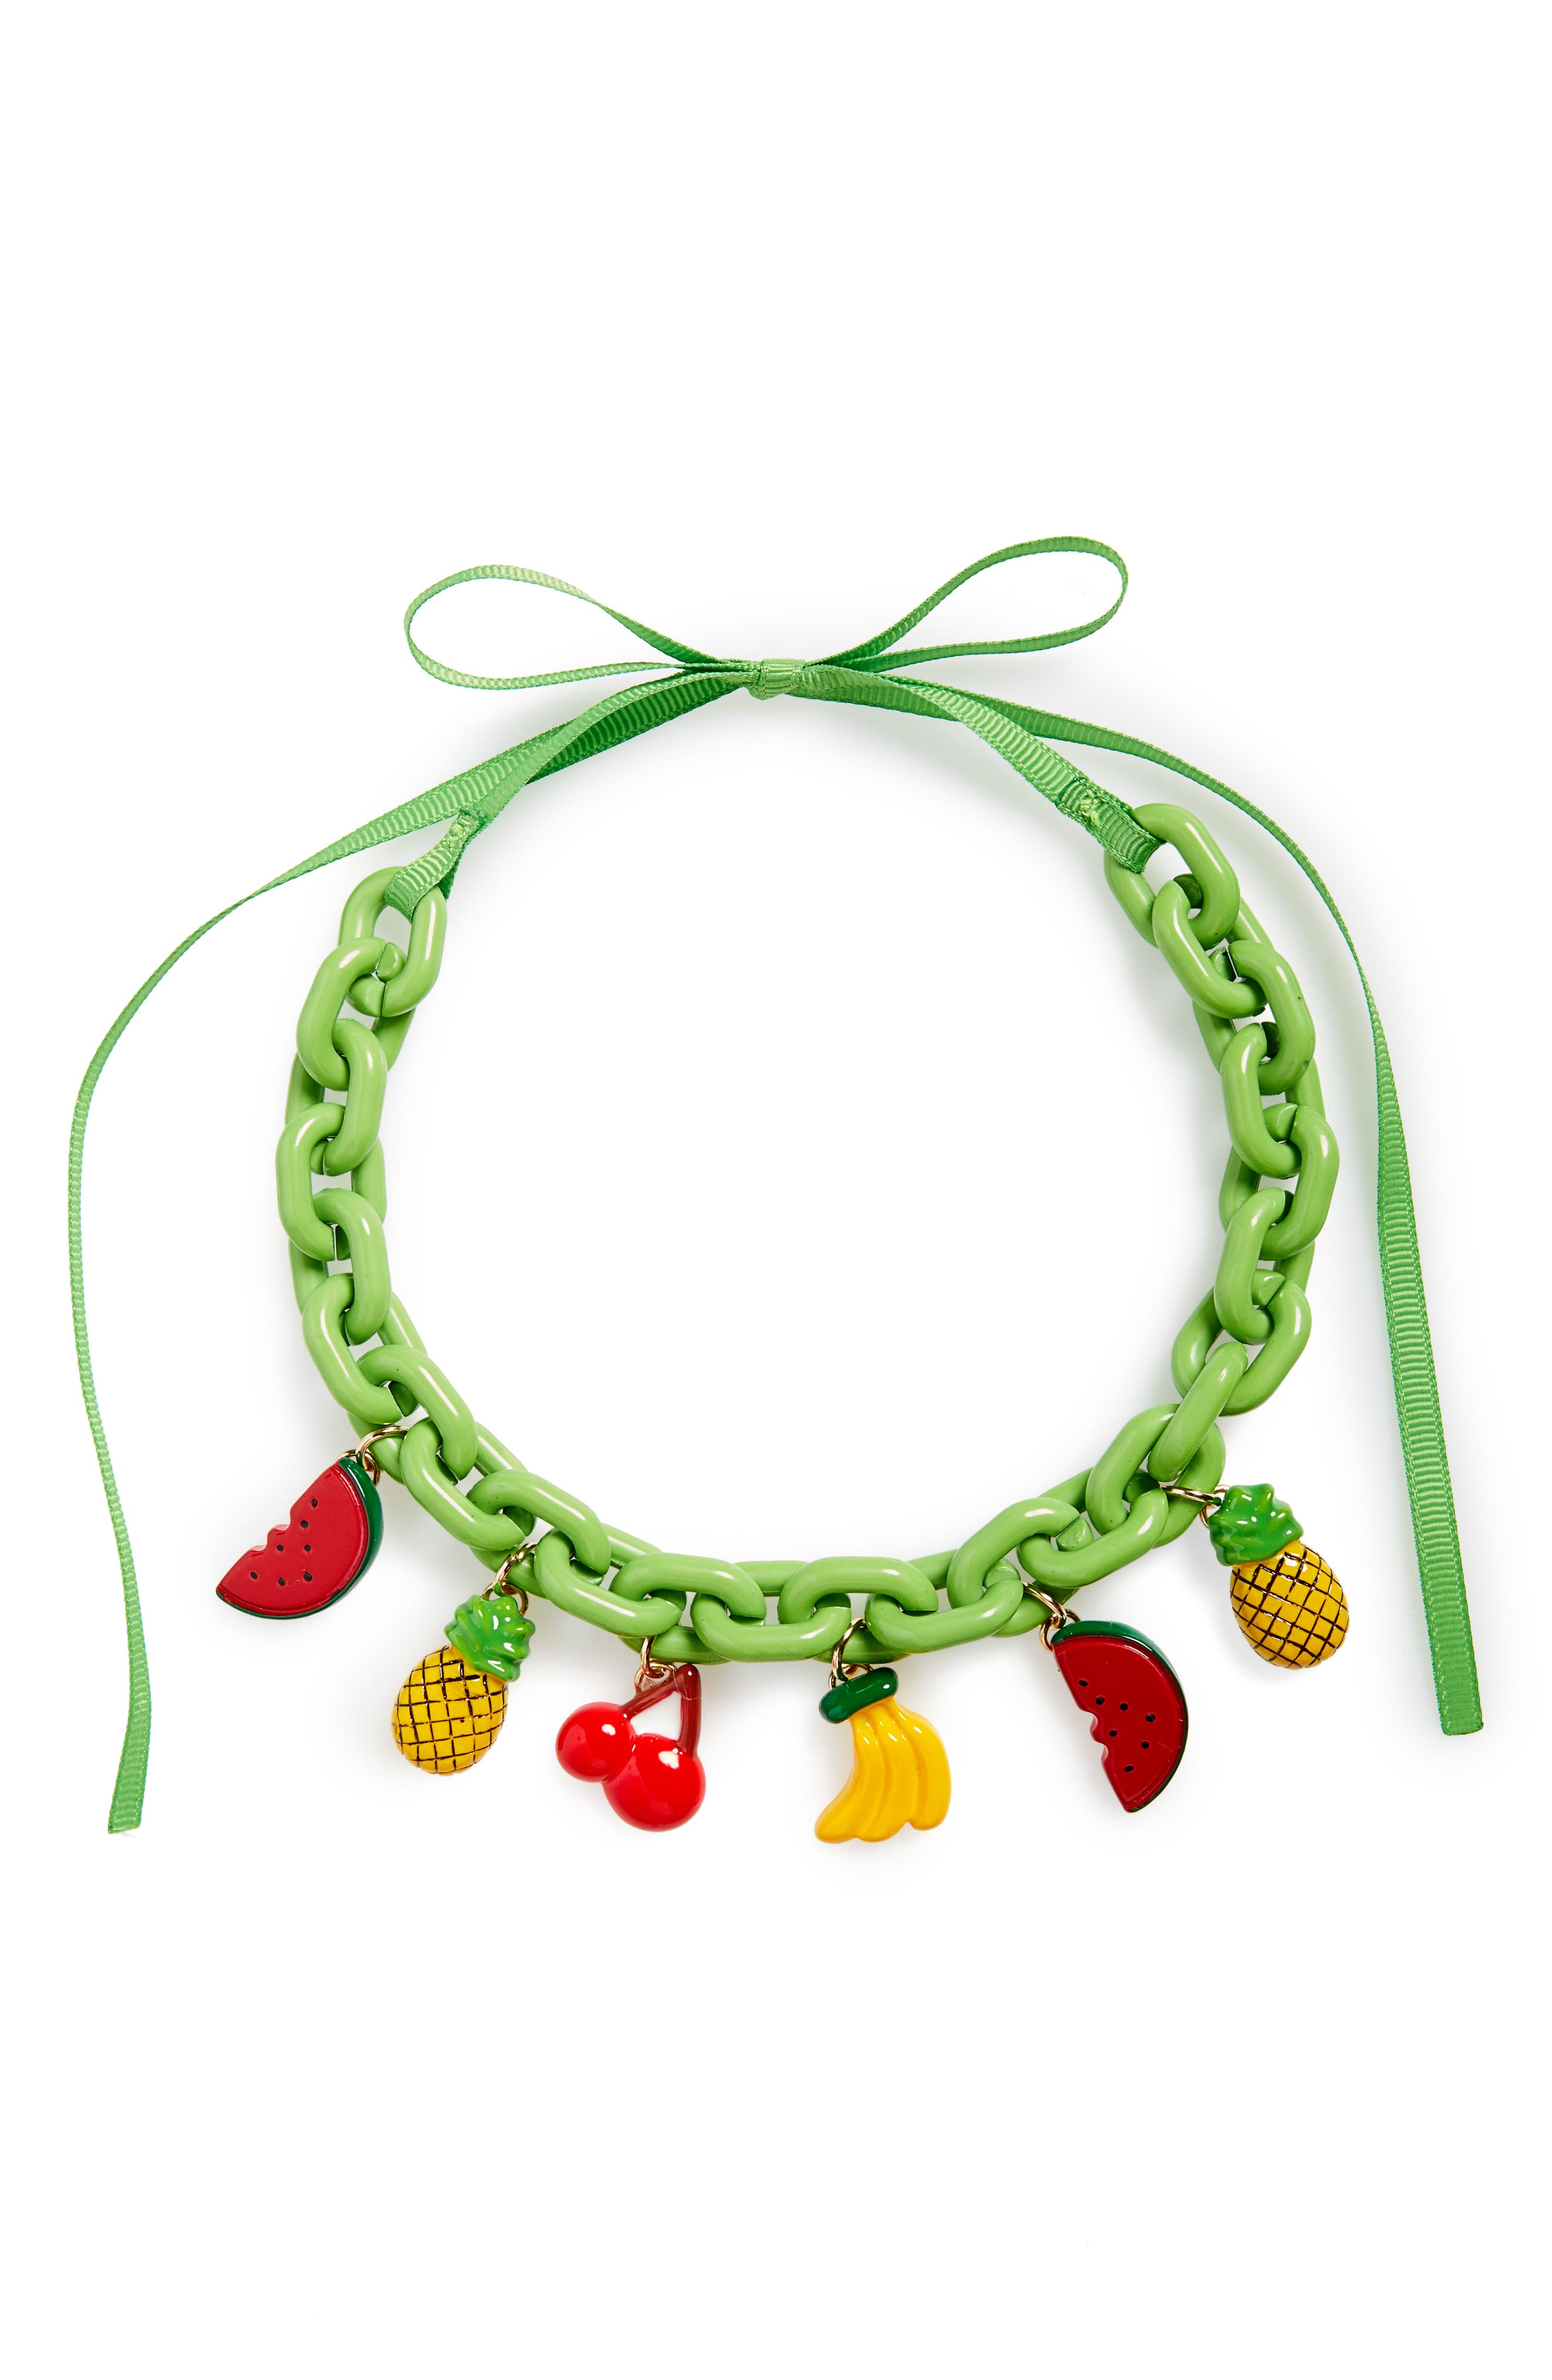 Fruit Chain Necklace,                             Main thumbnail 1, color,                             Green